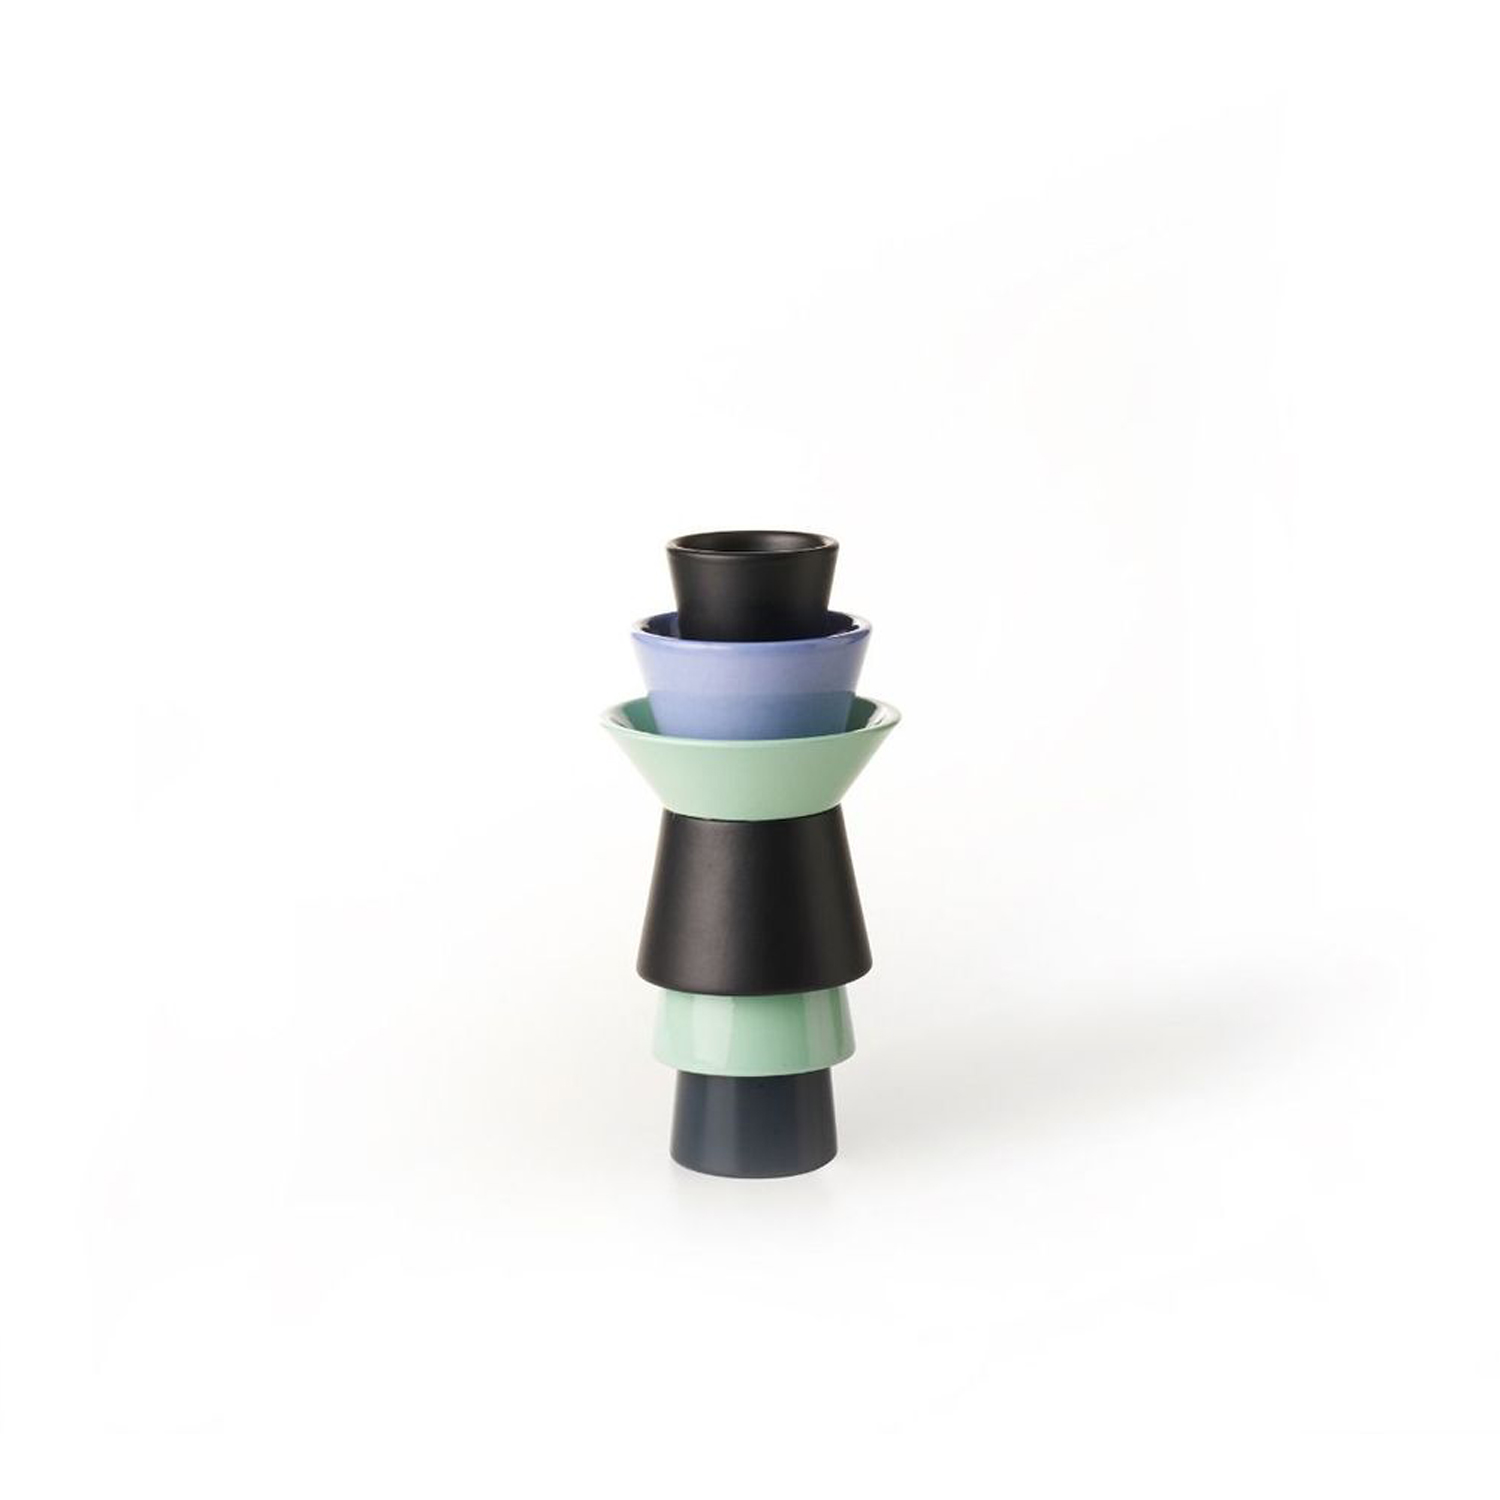 Three-Toned Tubular Vase - Architect Marco Zanini, one of the founders of the Memphis group that designs and produces pieces which are then exhibited in museums and galleries all over the world, has collaborated with Ettore Sottsass since the Seventies and has handcrafted for Bitossi a contemporary and elegant piece.